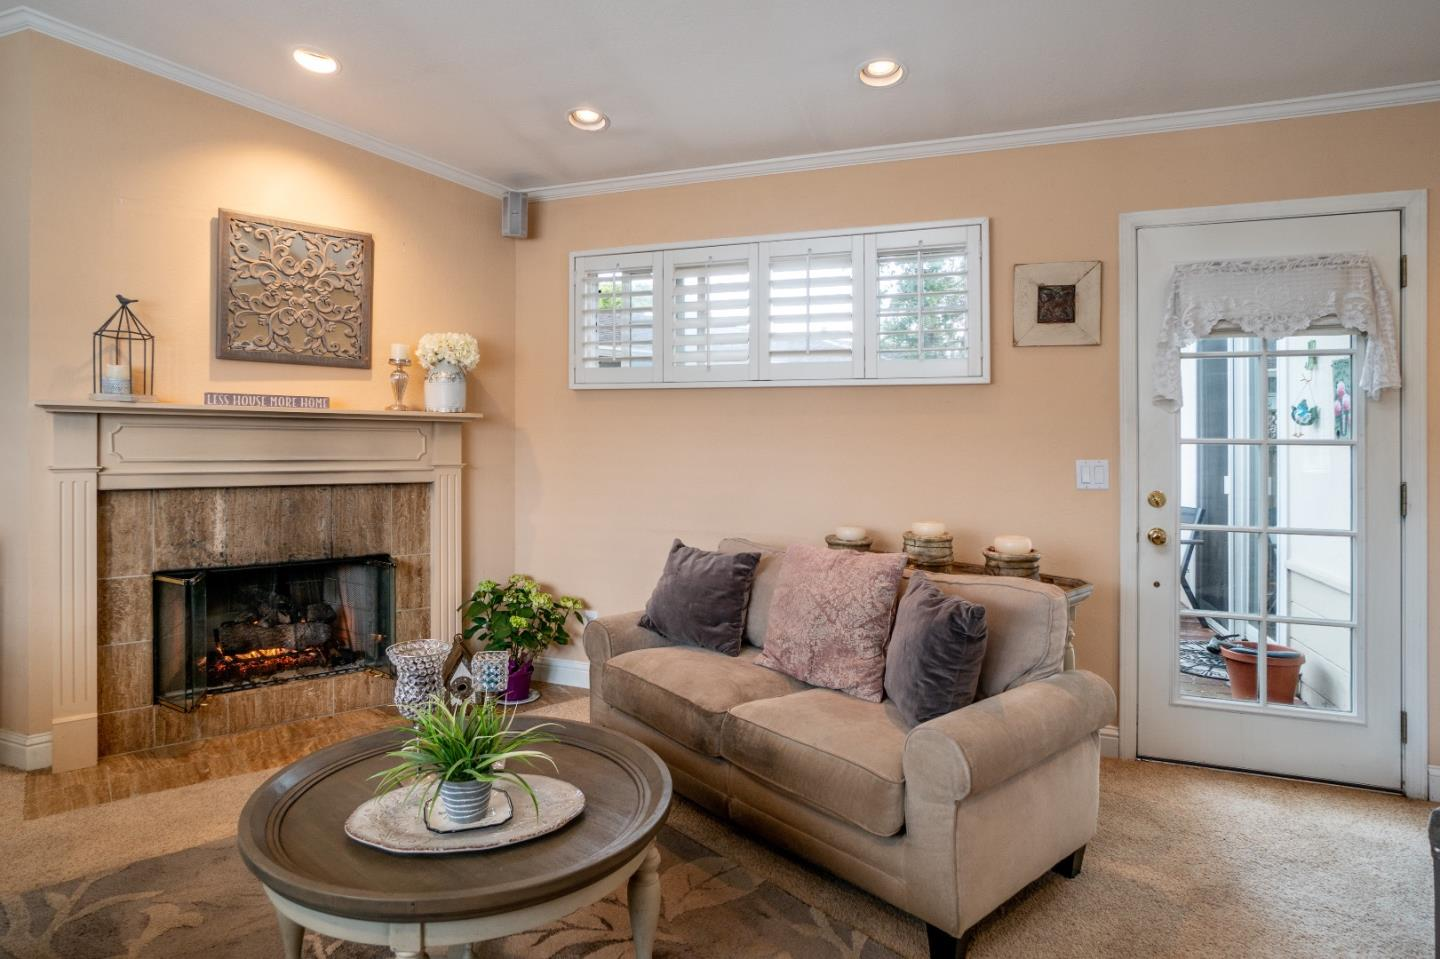 Detail Gallery Image 1 of 20 For 902 Hillcrest Ct, Pacific Grove, CA, 93950 - 3 Beds | 2 Baths